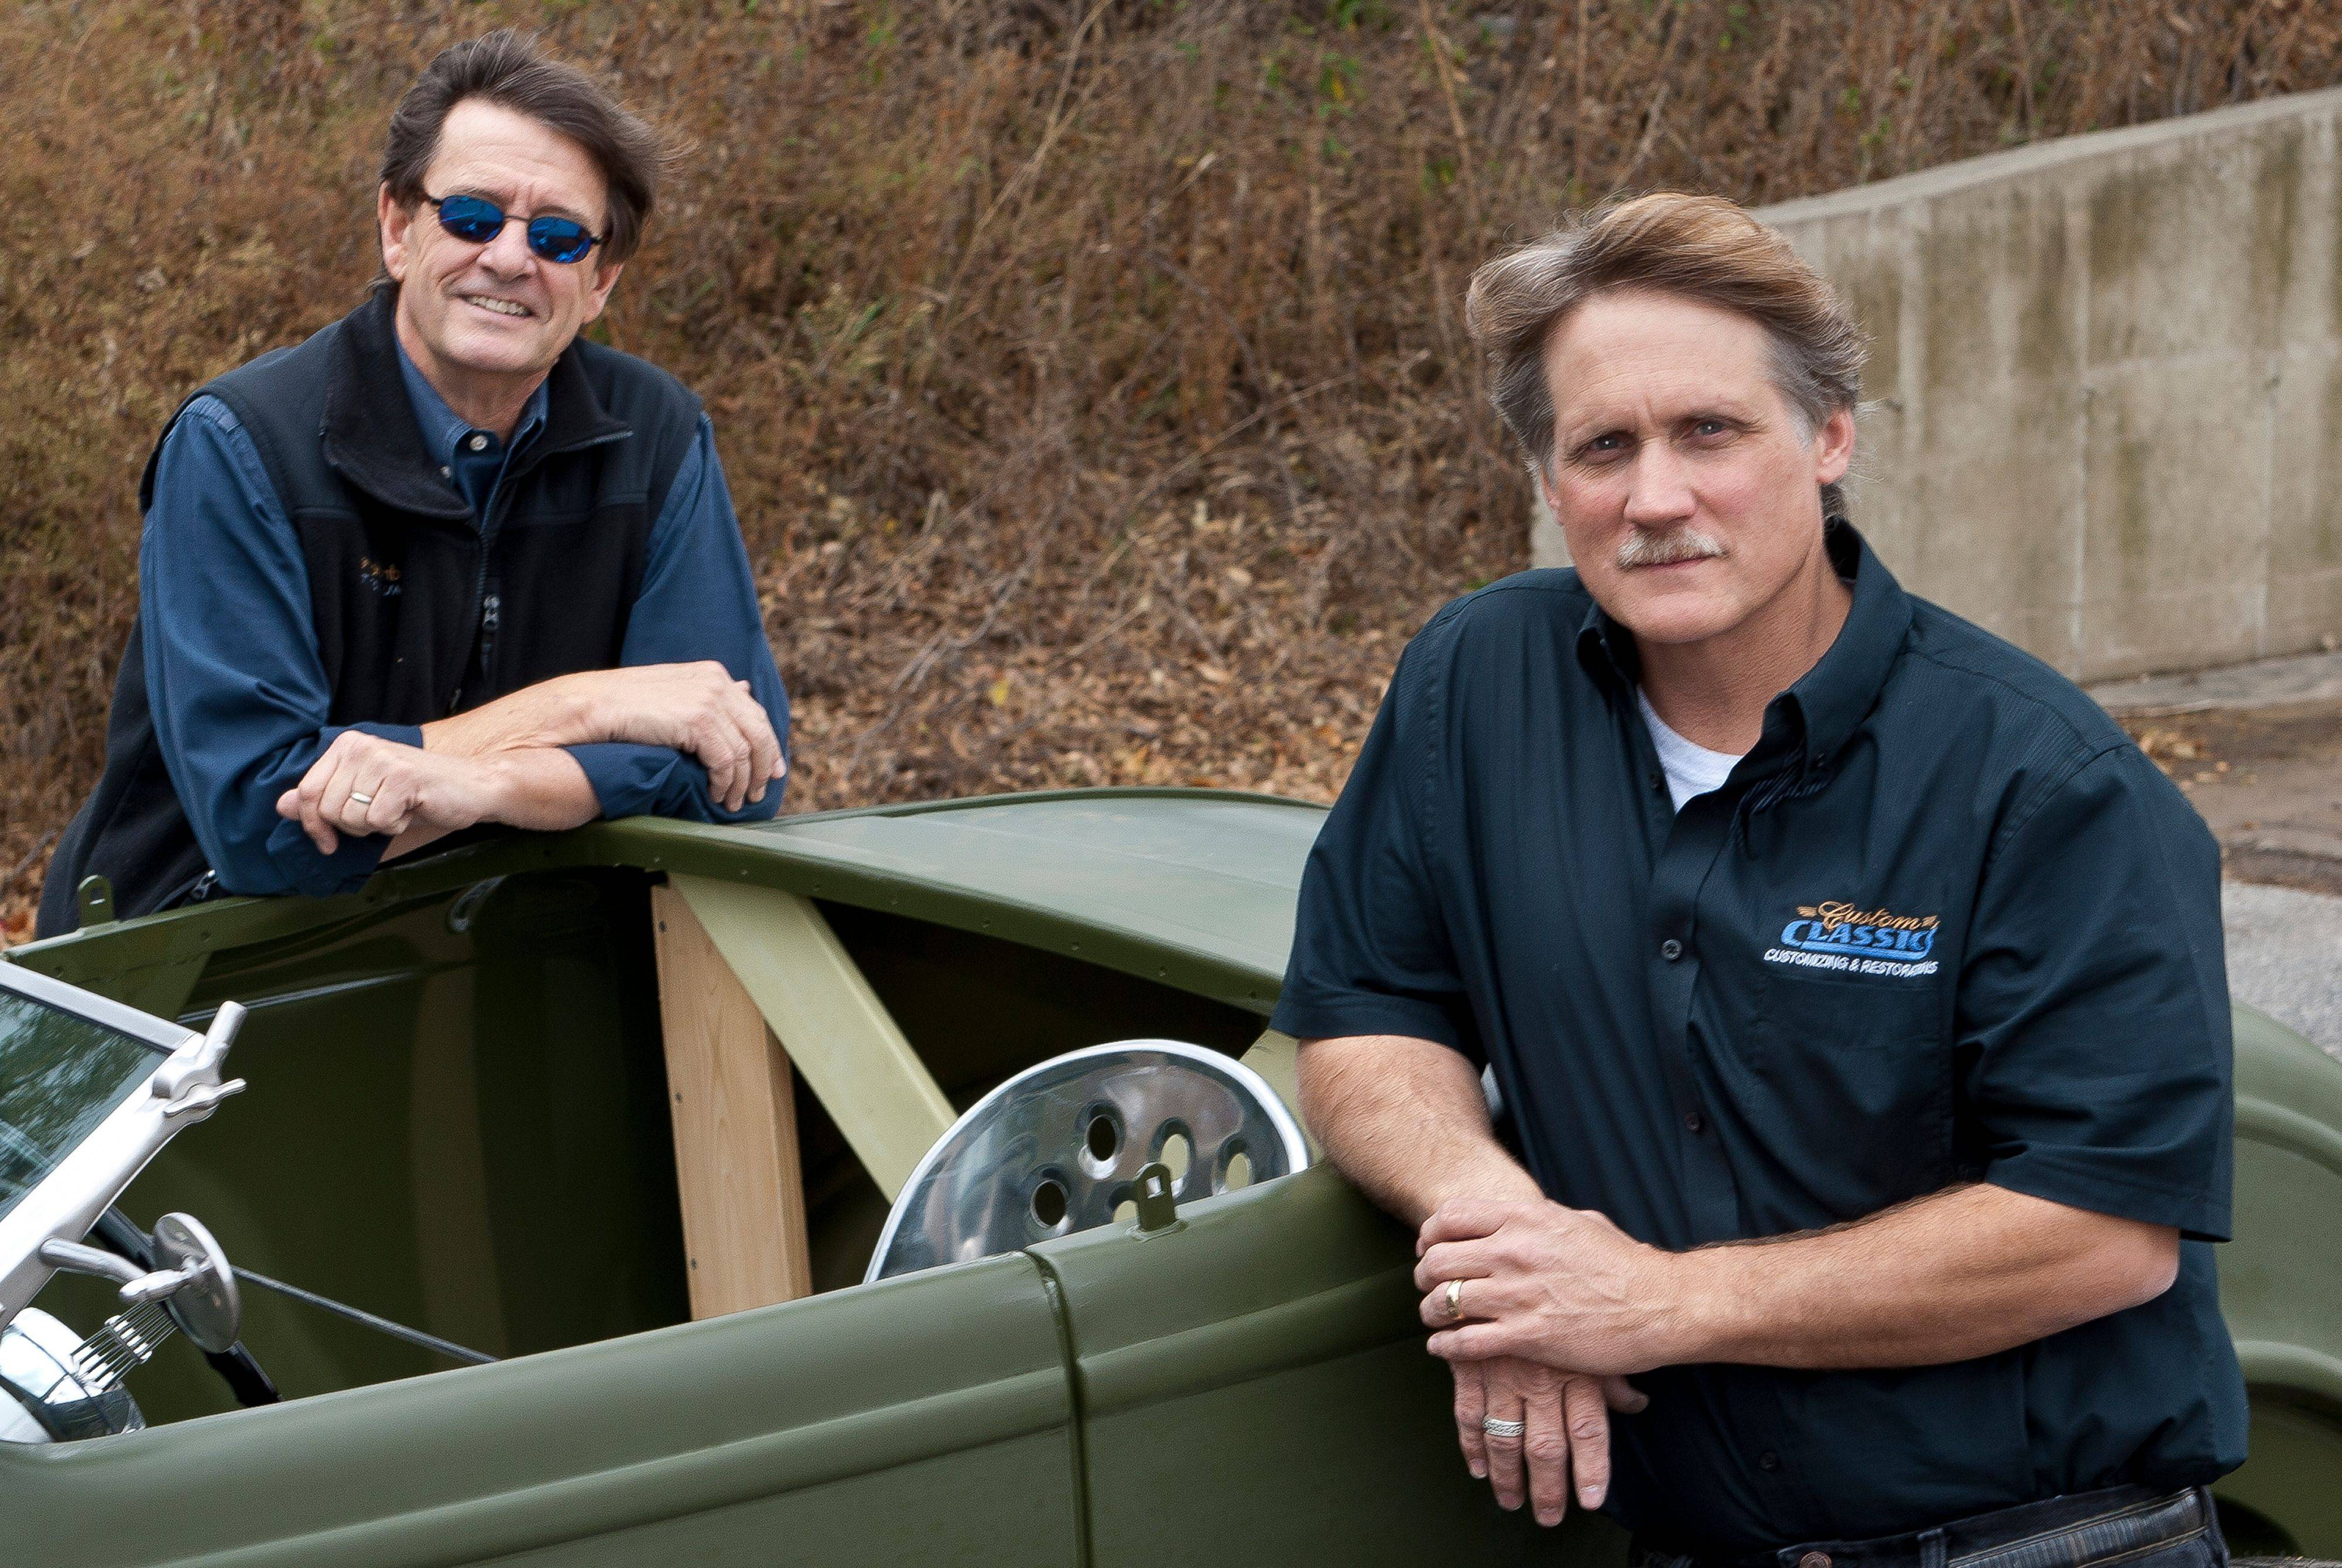 Lake Zurich resident Chuck Caswell and Bryan Reehoff of Barrington are behind the effort to build a hot rod and auction it off to raise money for military families.